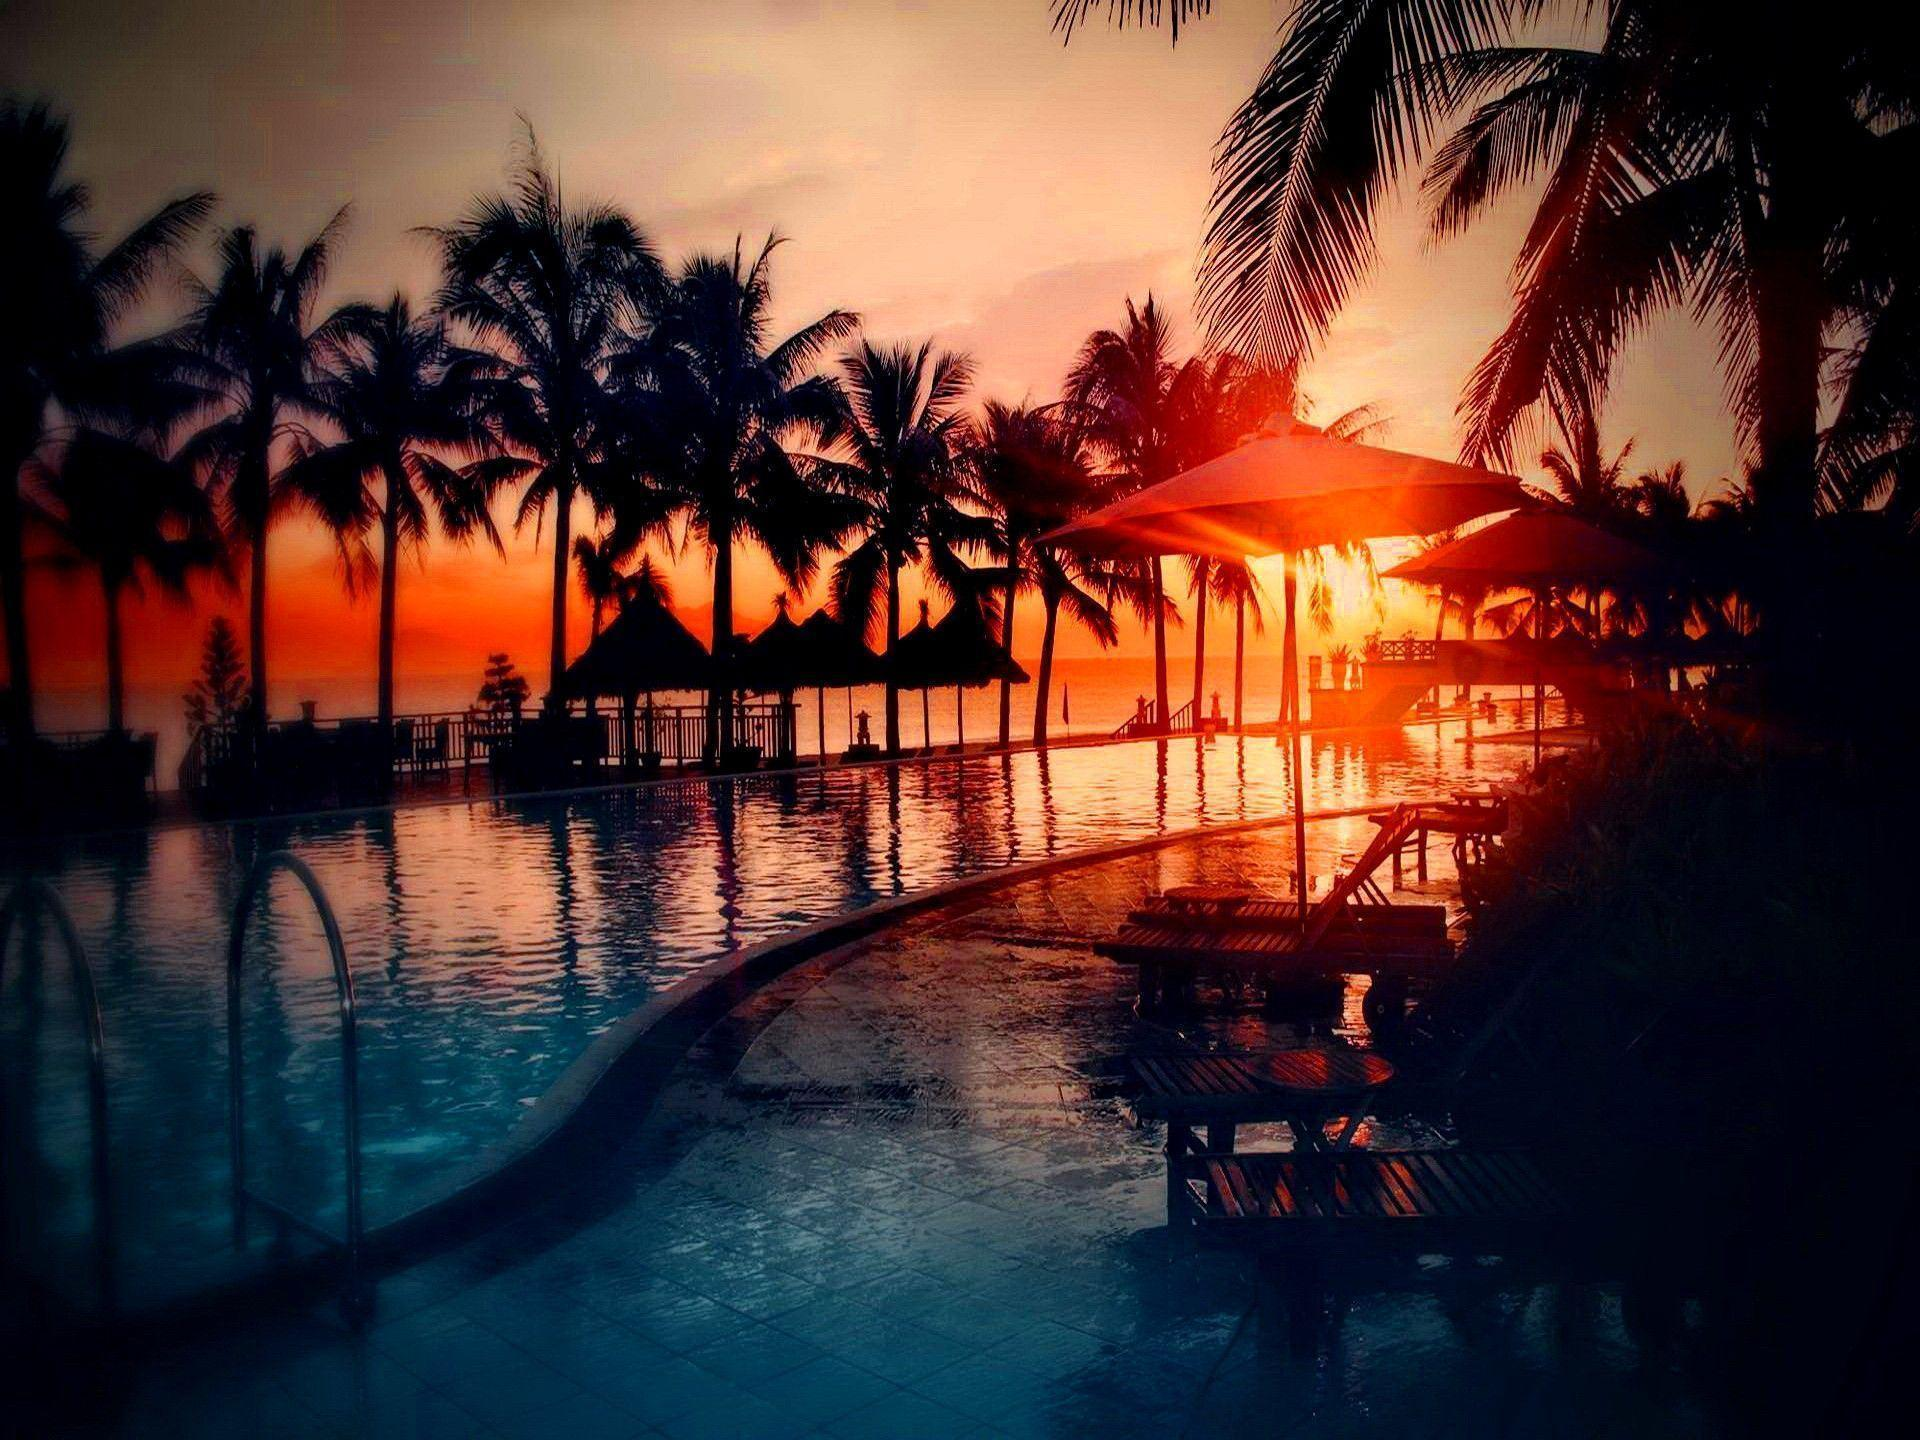 tropical sunset backgrounds - photo #4